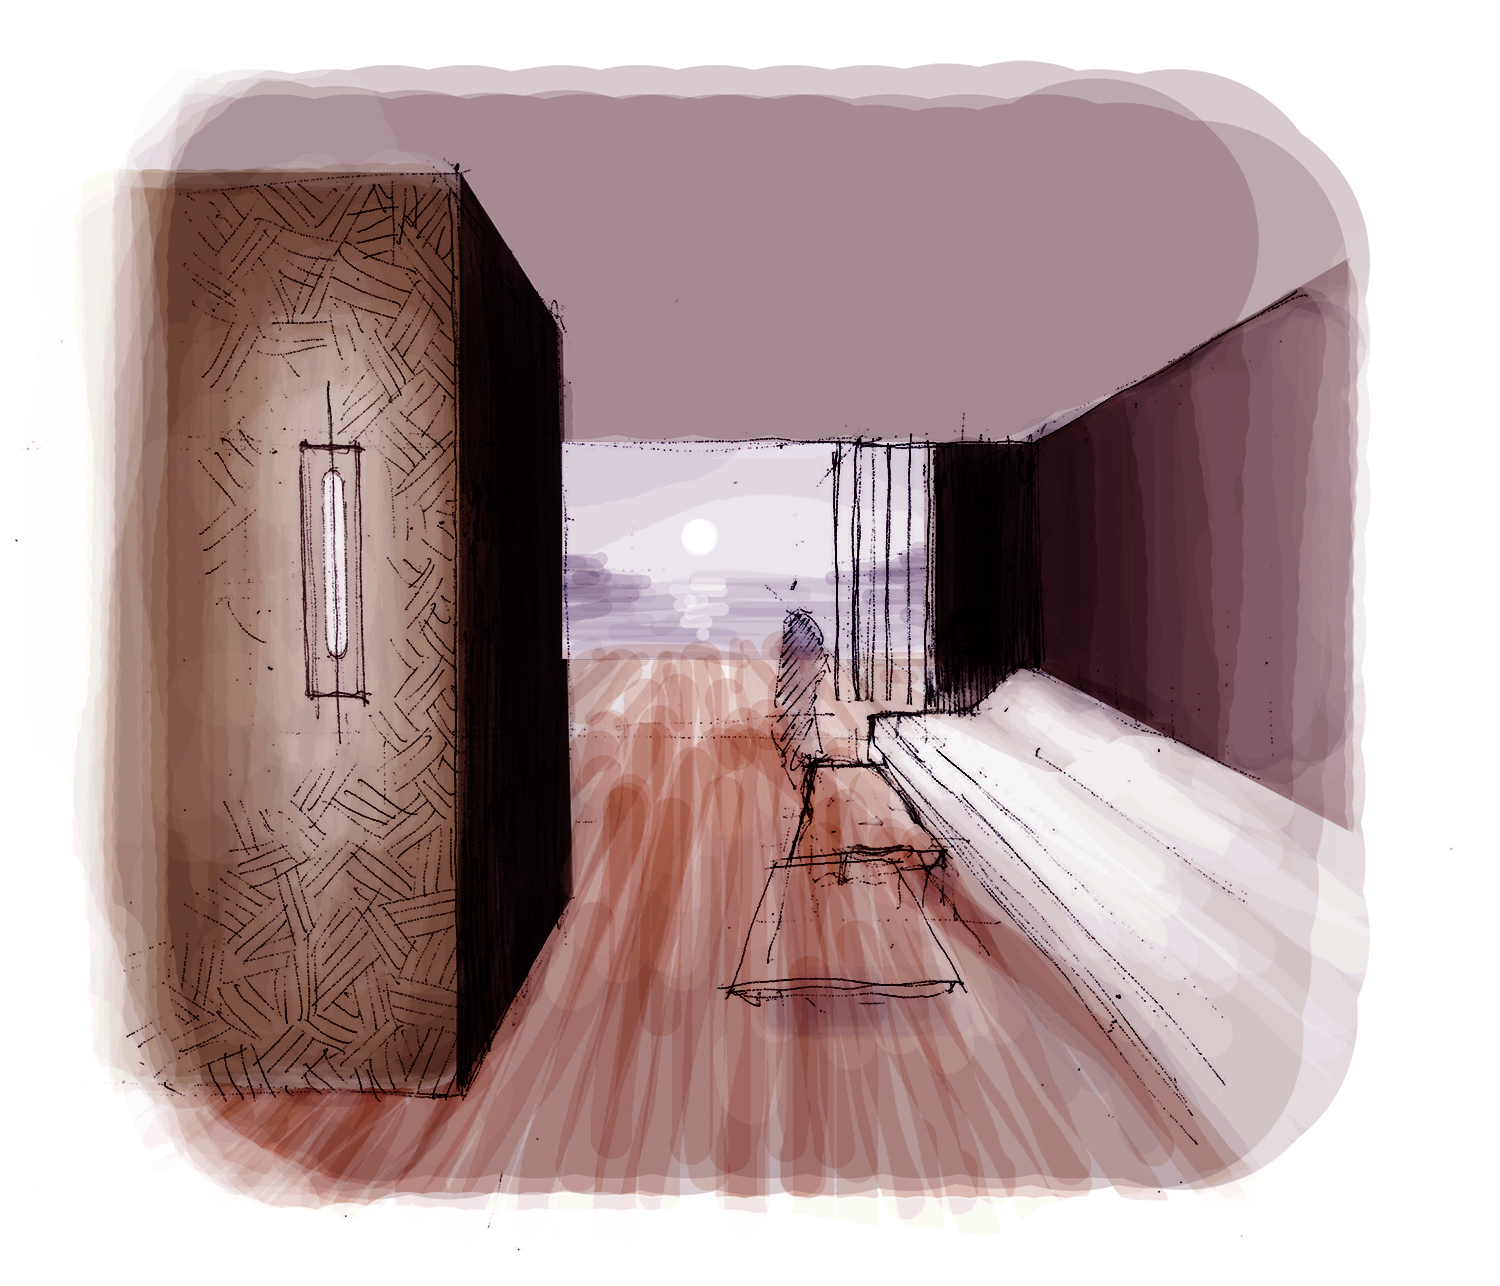 BOIFFILS-Dian Shan Lake-Sketch-Room-01.jpg